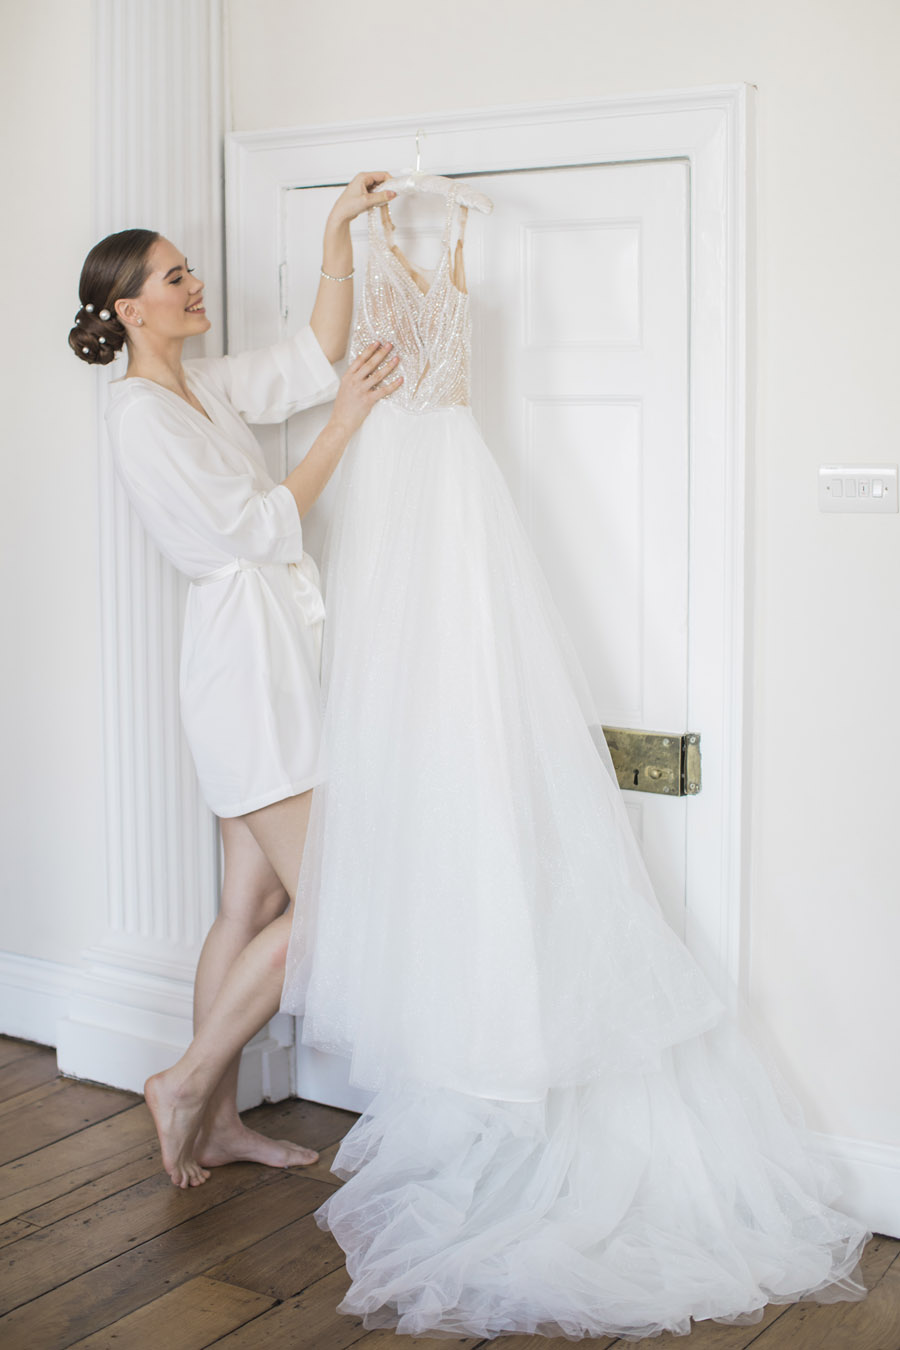 for bridesmaids everywhere, with love. Image credit Natalie D Photography (14)